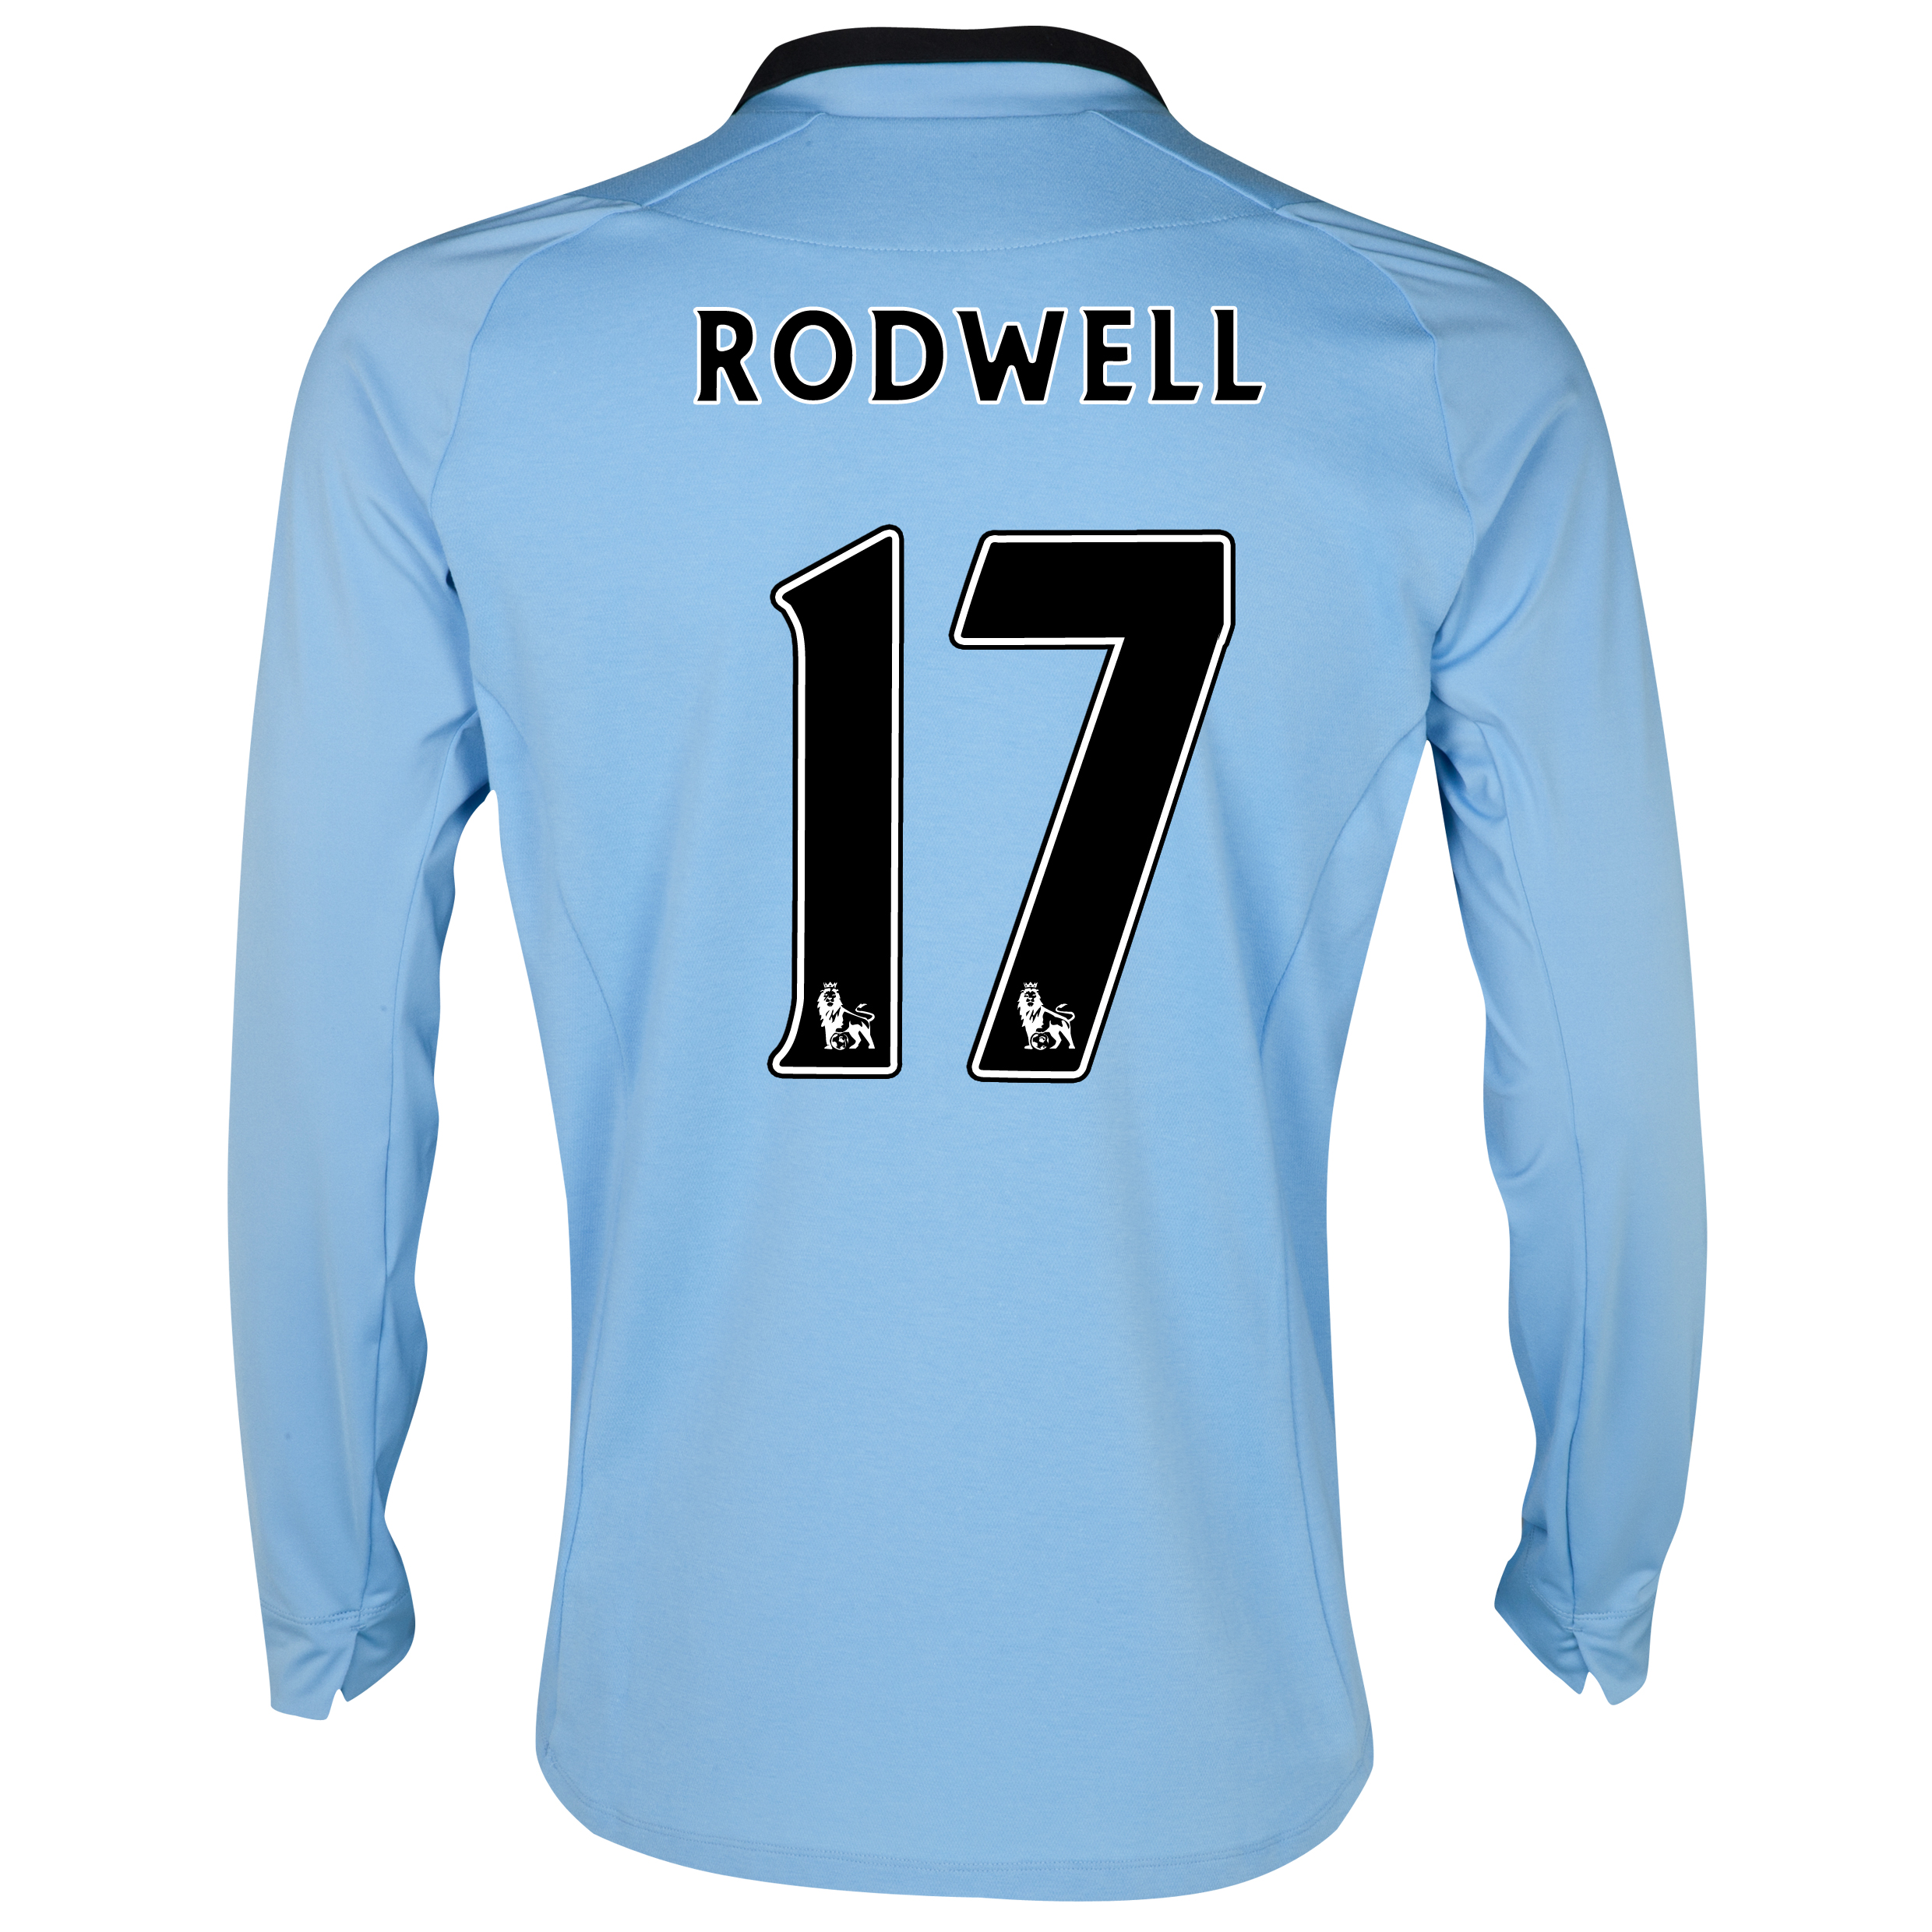 Manchester City Home Shirt 2012/13 - Long Sleeved - Junior with Rodwell 17 printing